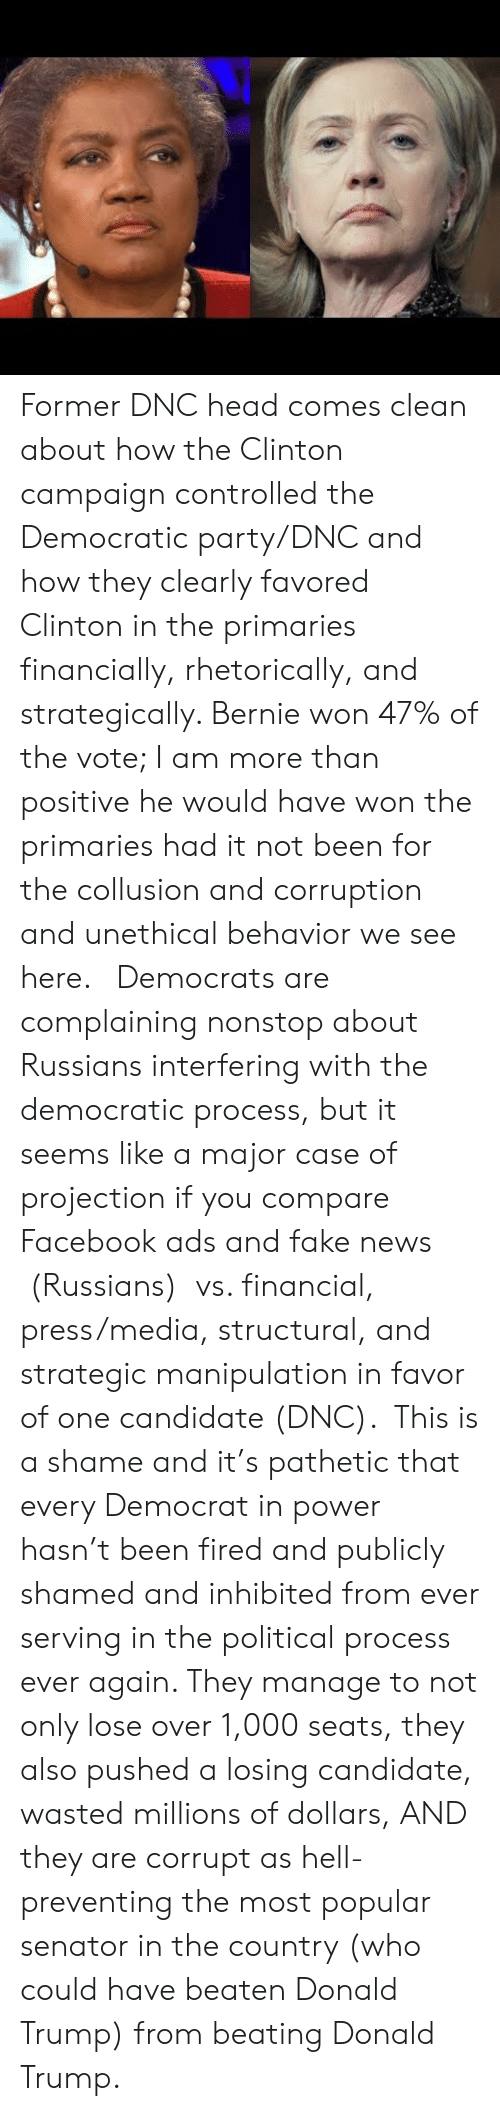 2016 Election: Former DNC head comes clean about how the Clinton campaign controlled the Democratic party/DNC and how they clearly favored Clinton in the primaries financially, rhetorically, and strategically. Bernie won 47% of the vote; I am more than positive he would have won the primaries had it not been for the collusion and corruption and unethical behavior we see here.  Democrats are complaining nonstop about Russians interfering with the democratic process, but it seems like a major case of projection if you compare Facebook ads and fake news (Russians) vs. financial, press/media, structural, and strategic manipulation in favor of one candidate (DNC). This is a shame and it's pathetic that every Democrat in power hasn't been fired and publicly shamed and inhibited from ever serving in the political process ever again. They manage to not only lose over 1,000 seats, they also pushed a losing candidate, wasted millions of dollars, AND they are corrupt as hell- preventing the most popular senator in the country (who could have beaten Donald Trump) from beating Donald Trump.